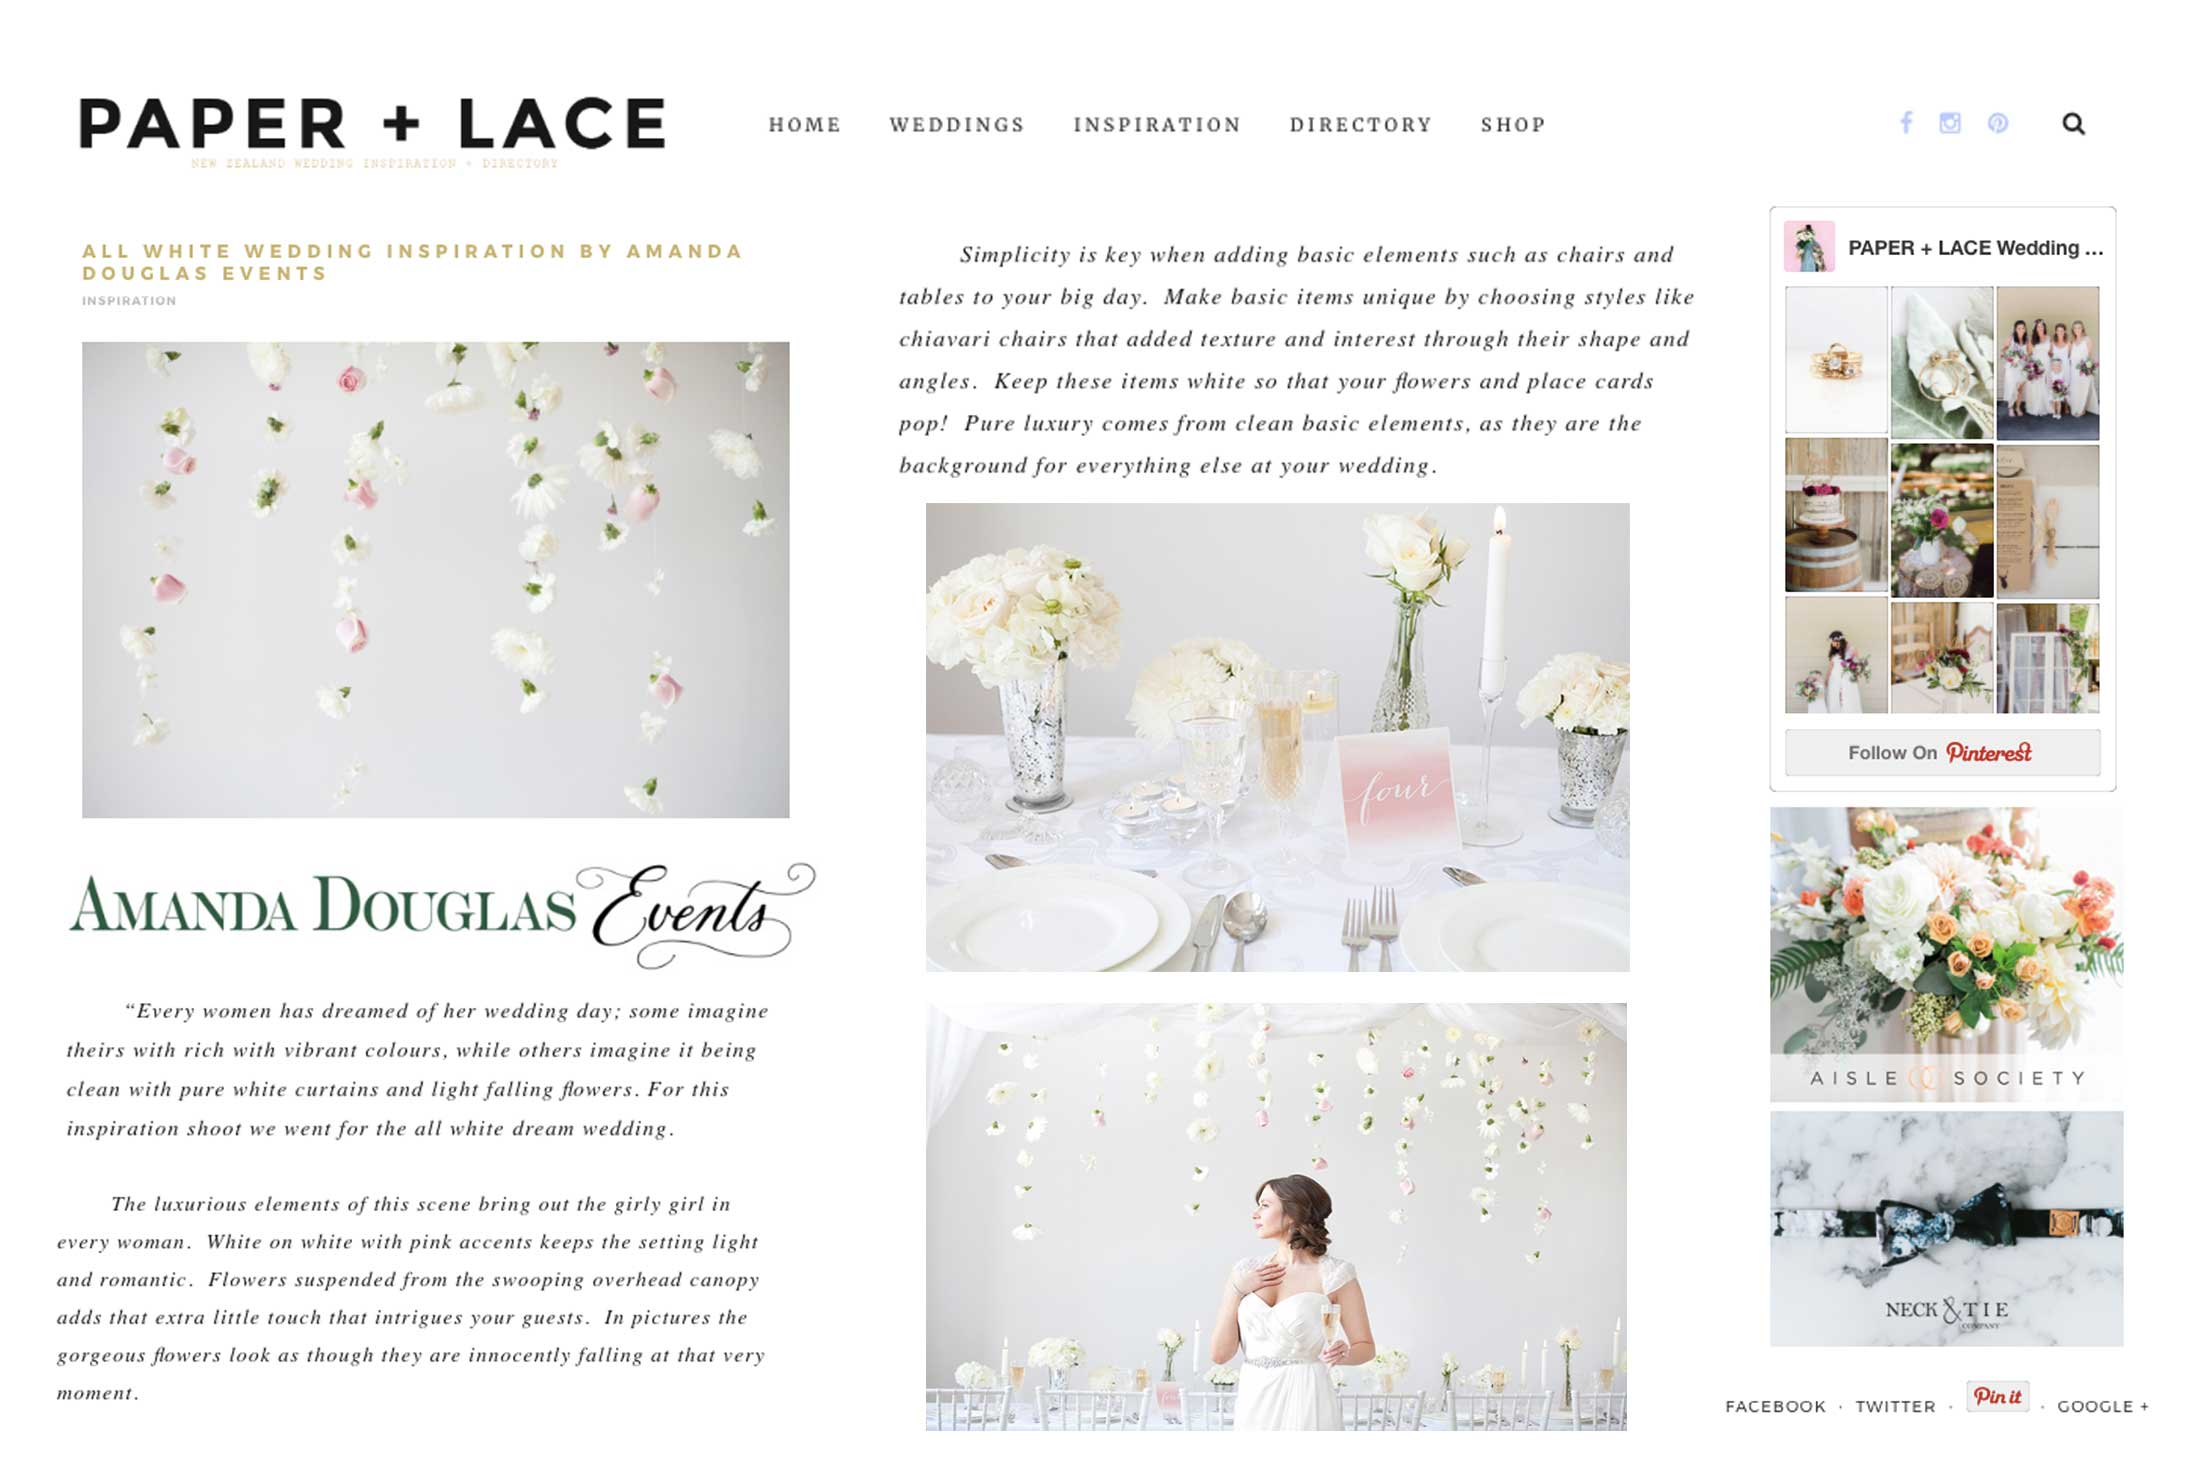 Winnipeg Wedding Planner and Inspiration Feature: Paper + Lace